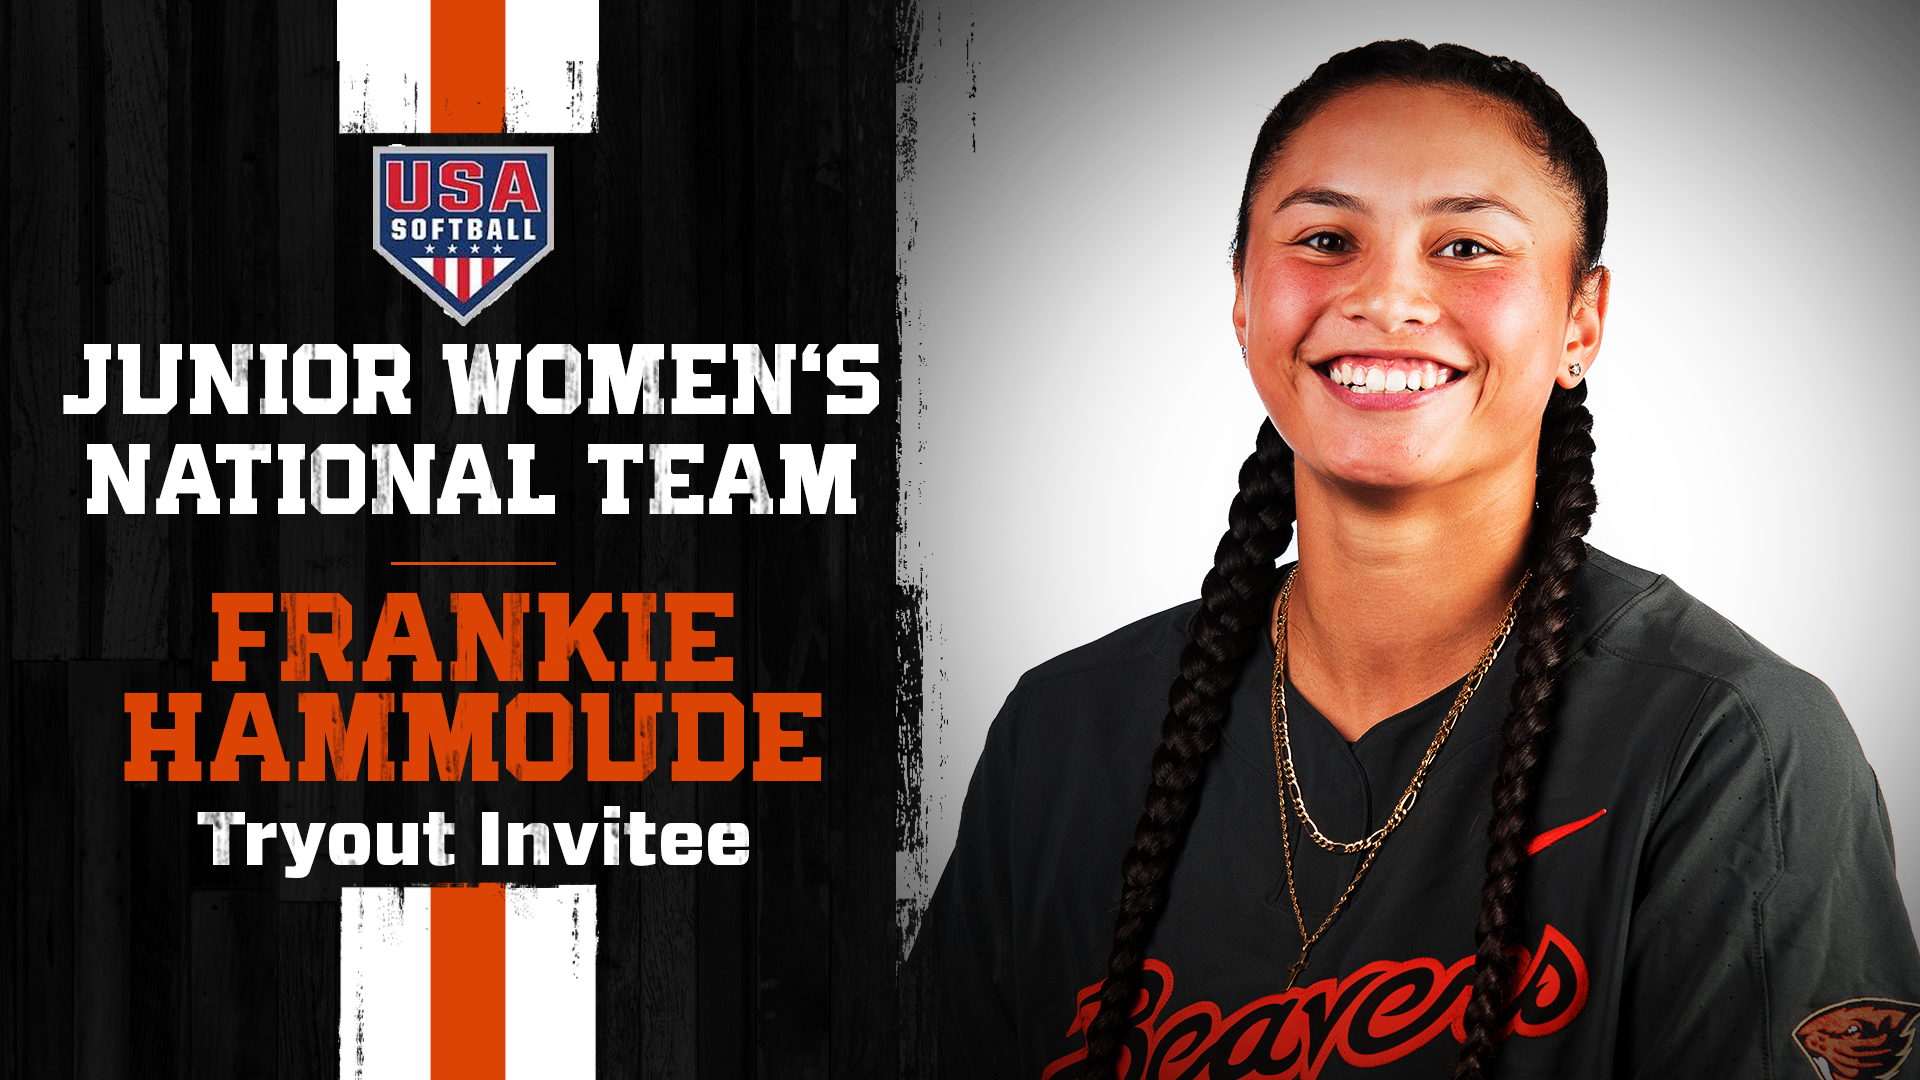 Frankie Hammoude Invited to Tryout for USA Softball Junior